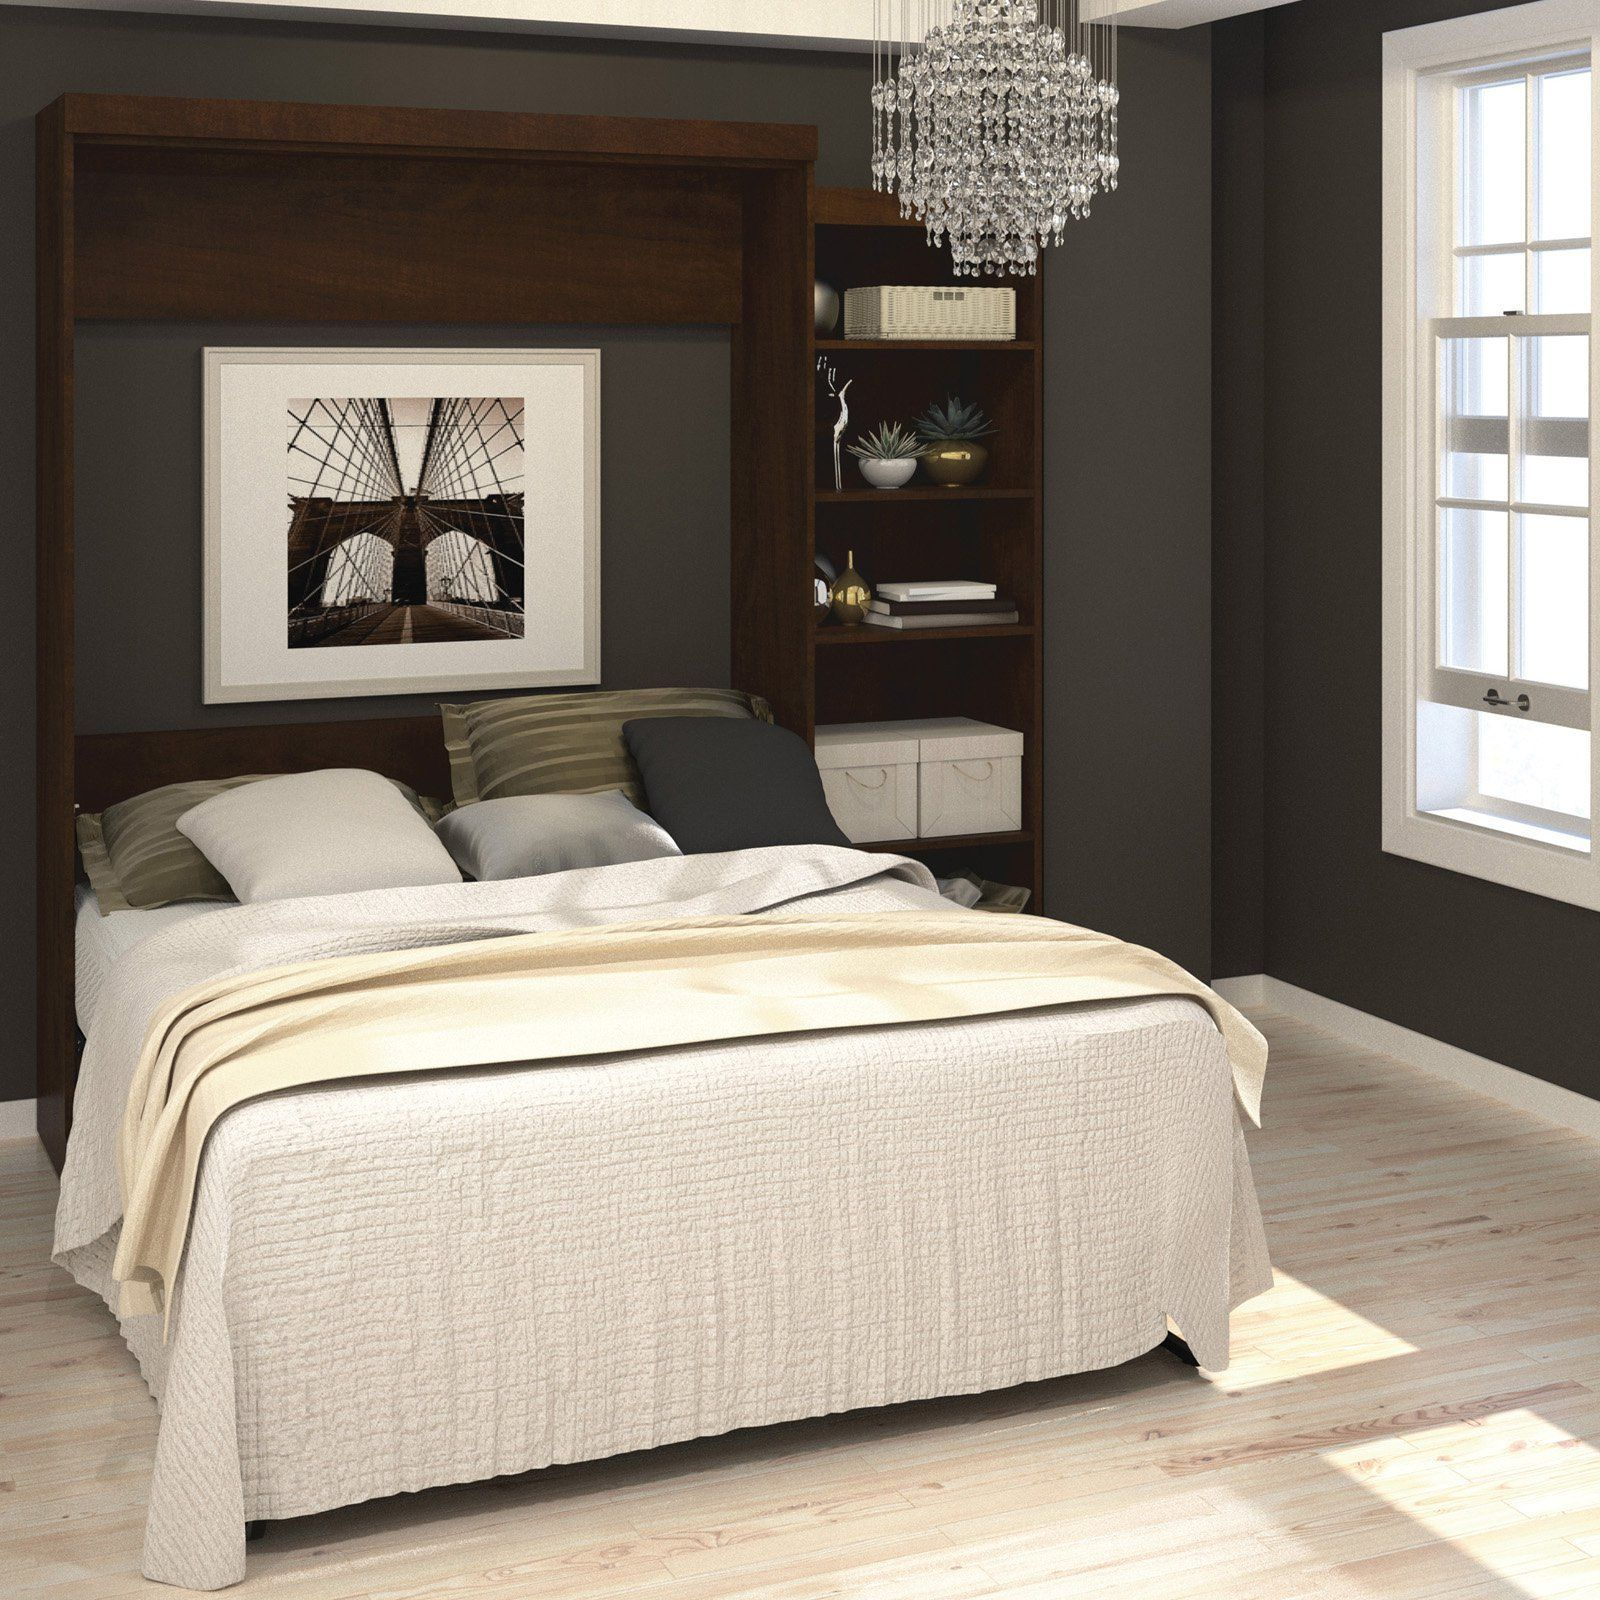 Bestar Pur Murphy Wall Bed with Attached